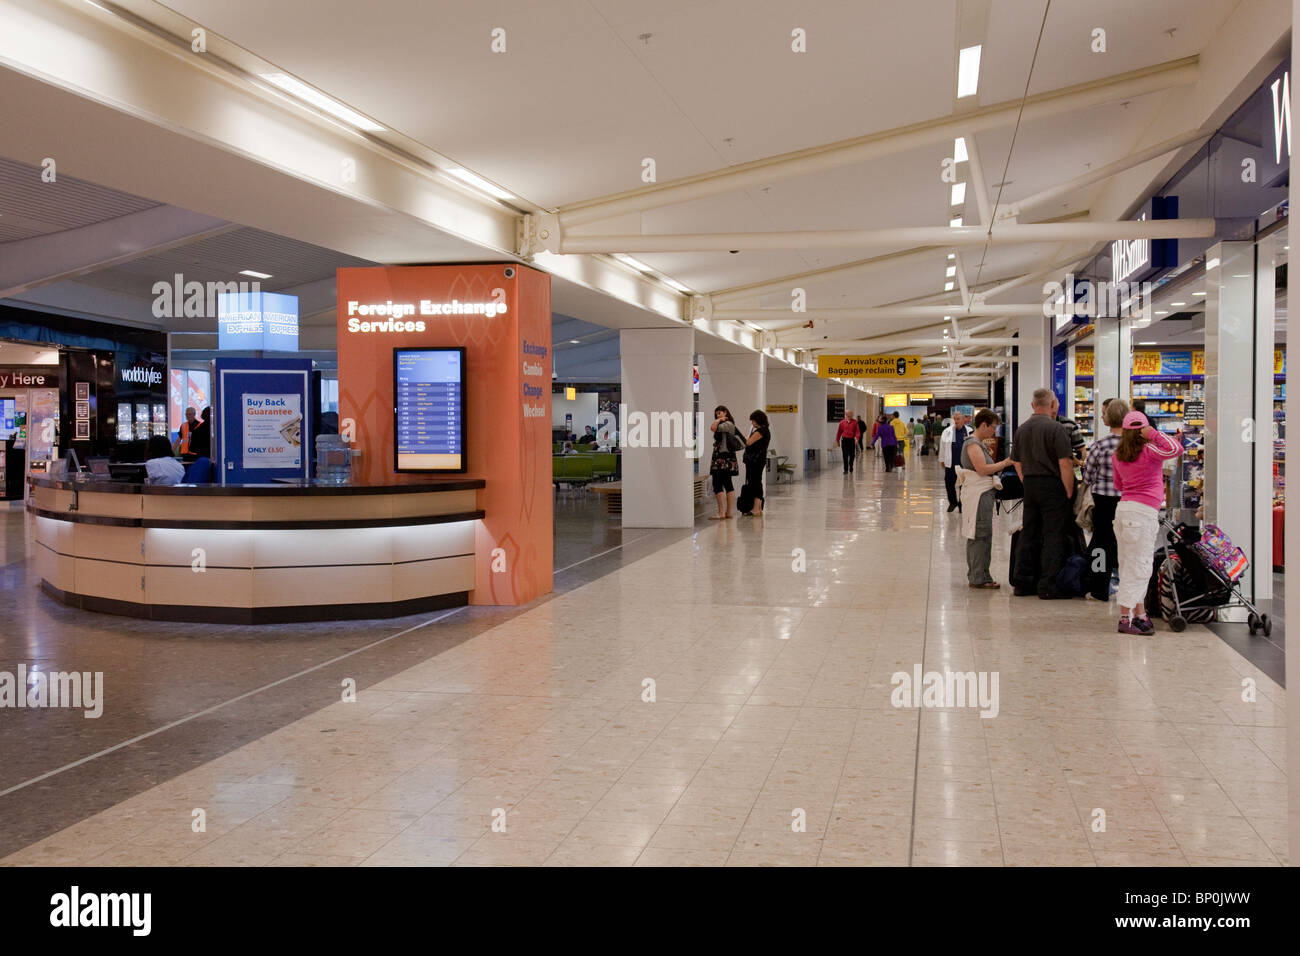 Main concourse at Edinburgh Airport. Scotland, UK, showing the Foreign Exchange desk, a WHSmith shop and some passengers. Stock Photo